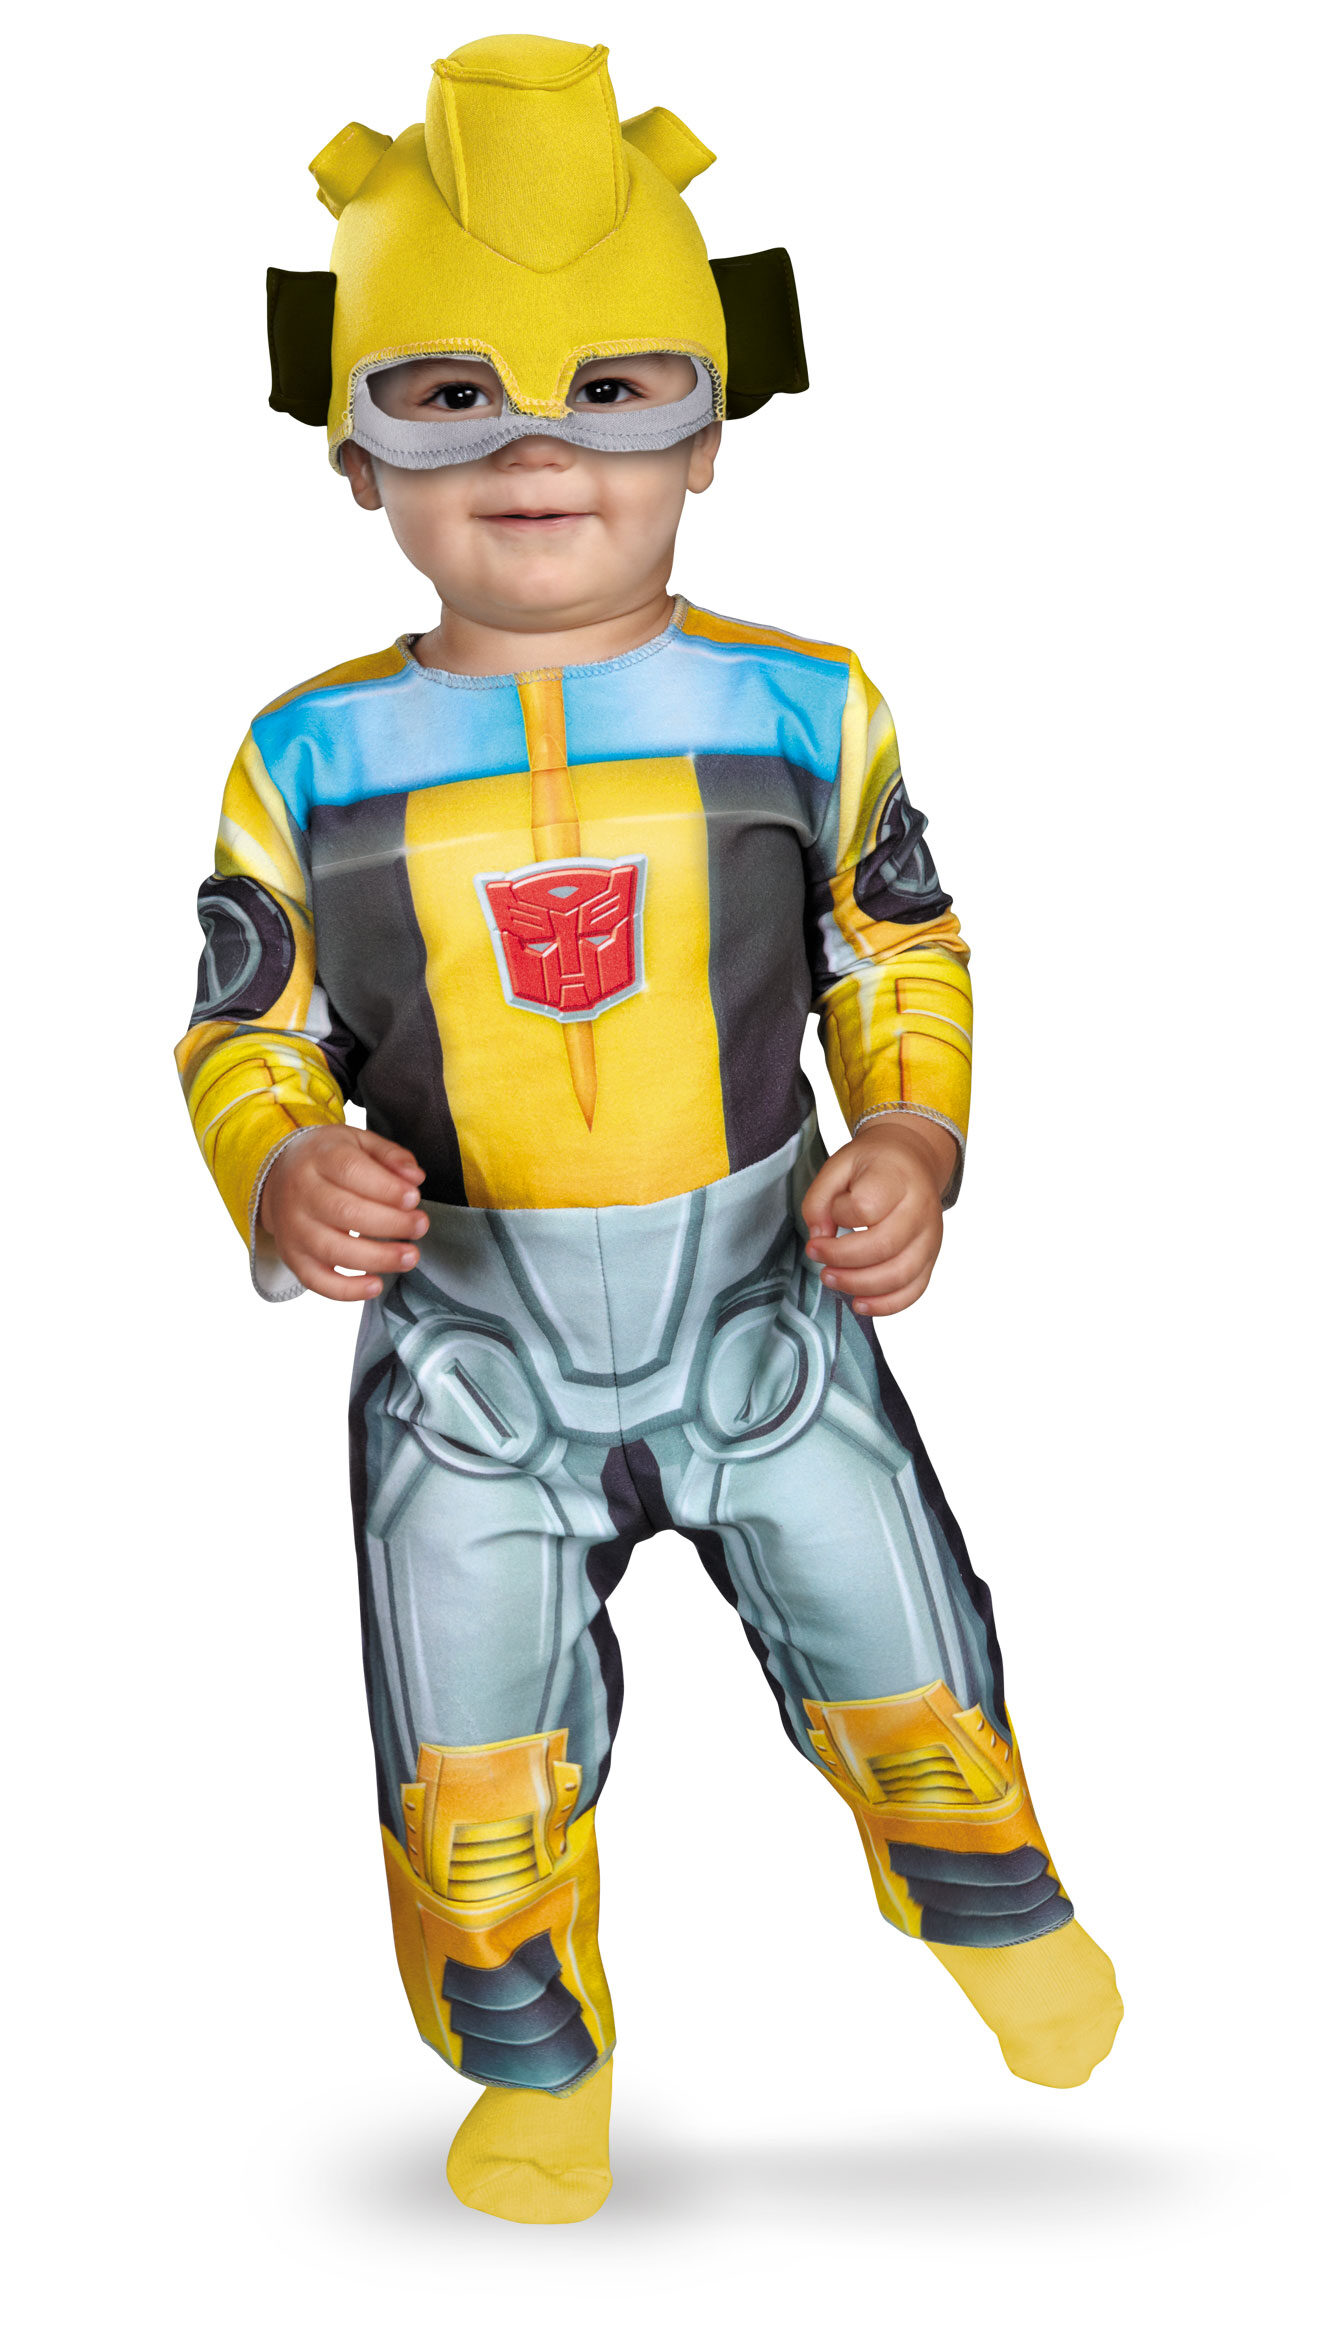 Transformers Costume Adults   Bumblebee Transformers Costume Sc 1 St ... d83d983c5